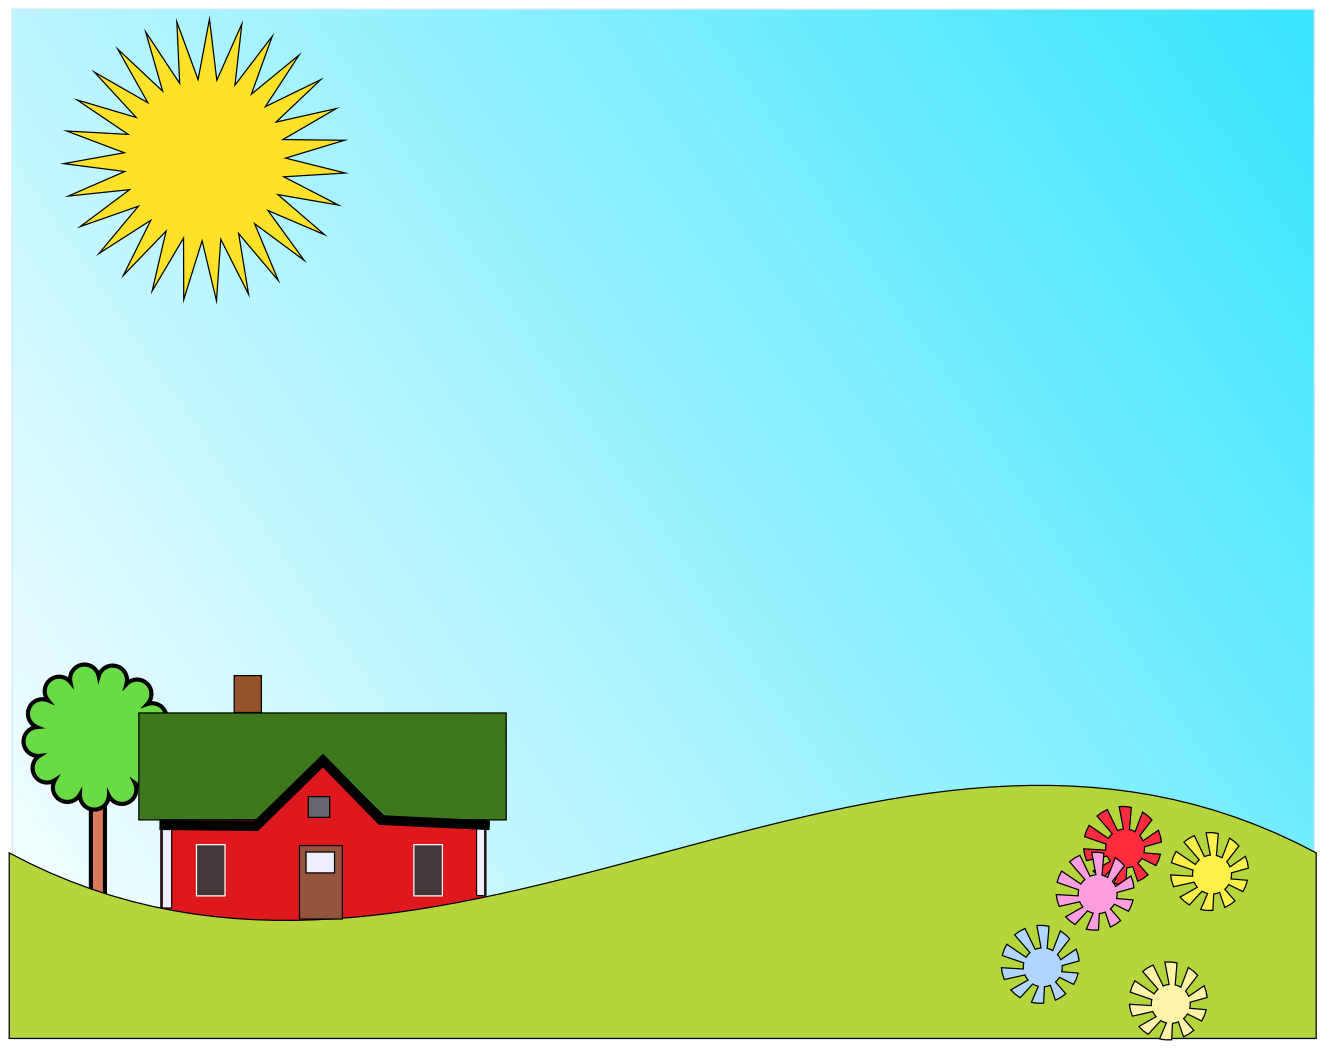 Png Sunny Day Cartoon 1920 X 1080 114 Kb Jpeg Sunny Day Cartoon 600 X